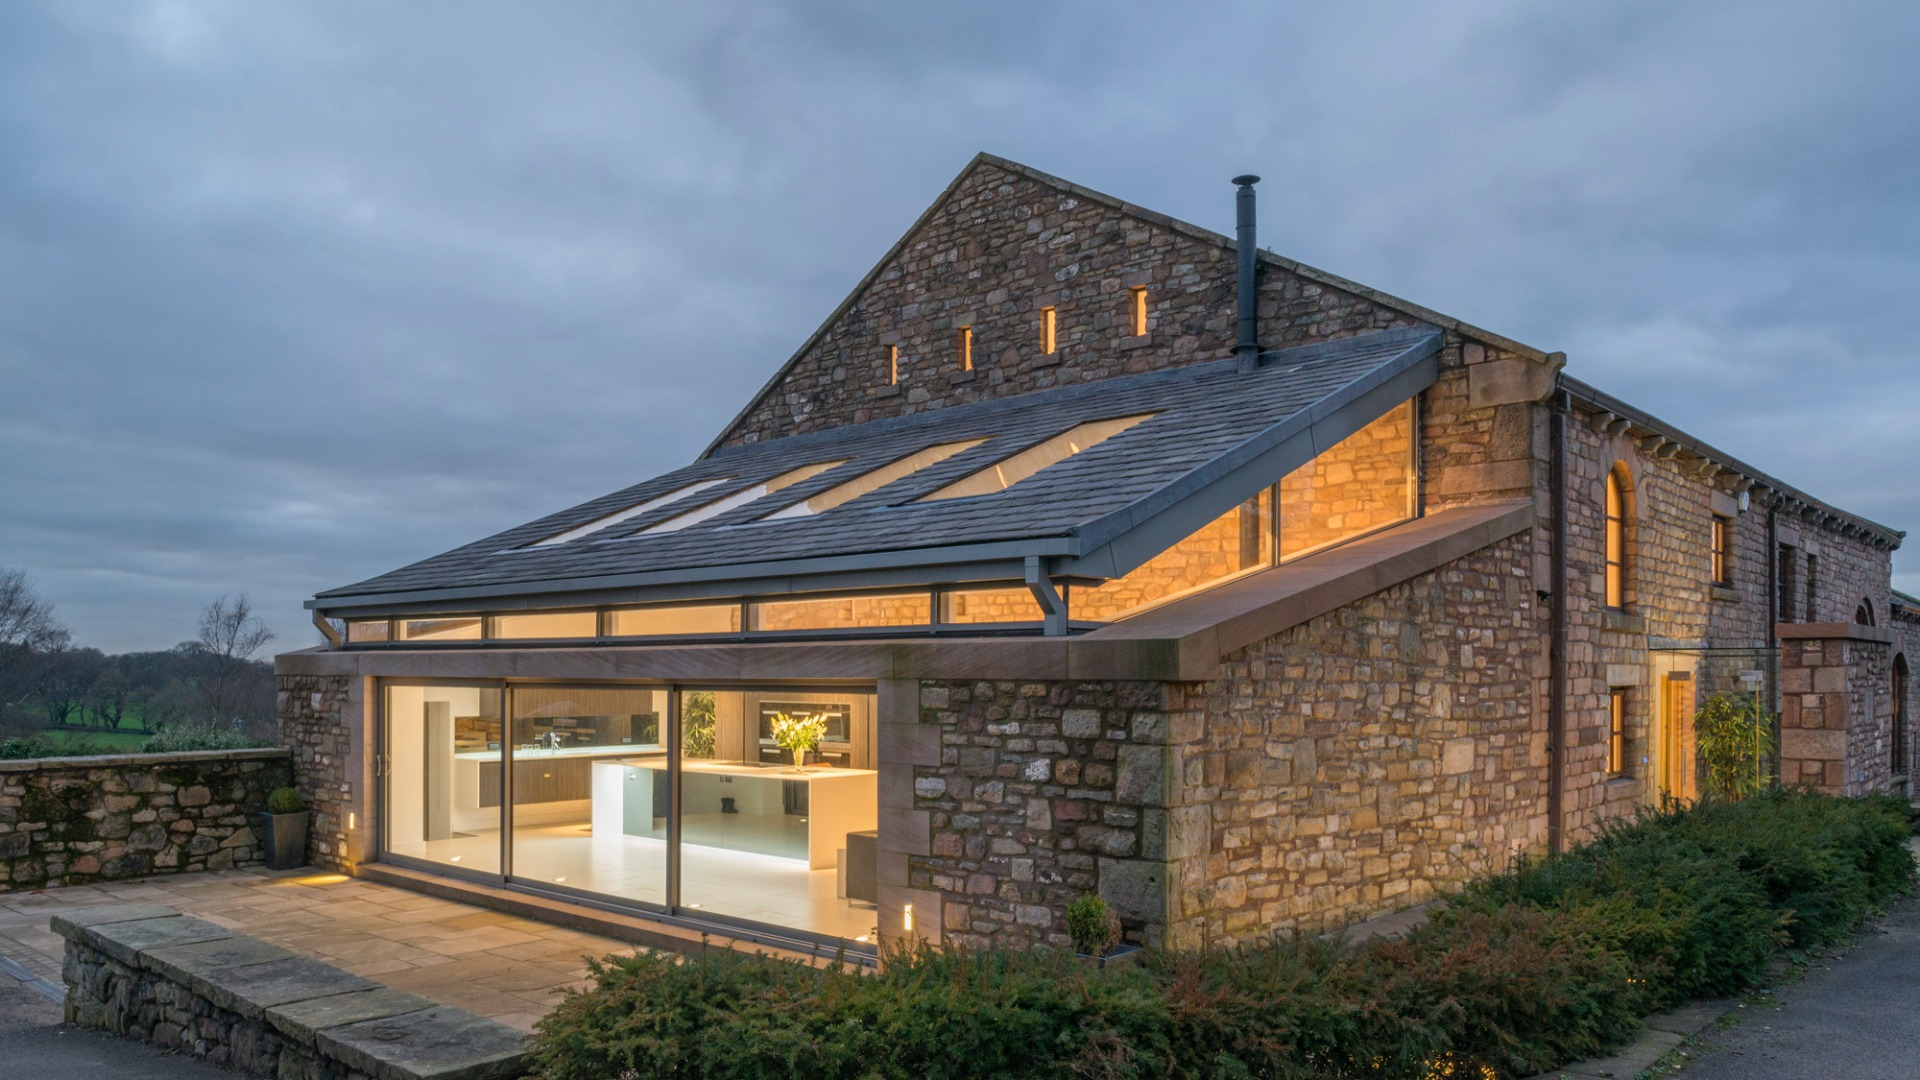 Barn conversion in White Coppice, Lancashire by Stanton Andrews Architects